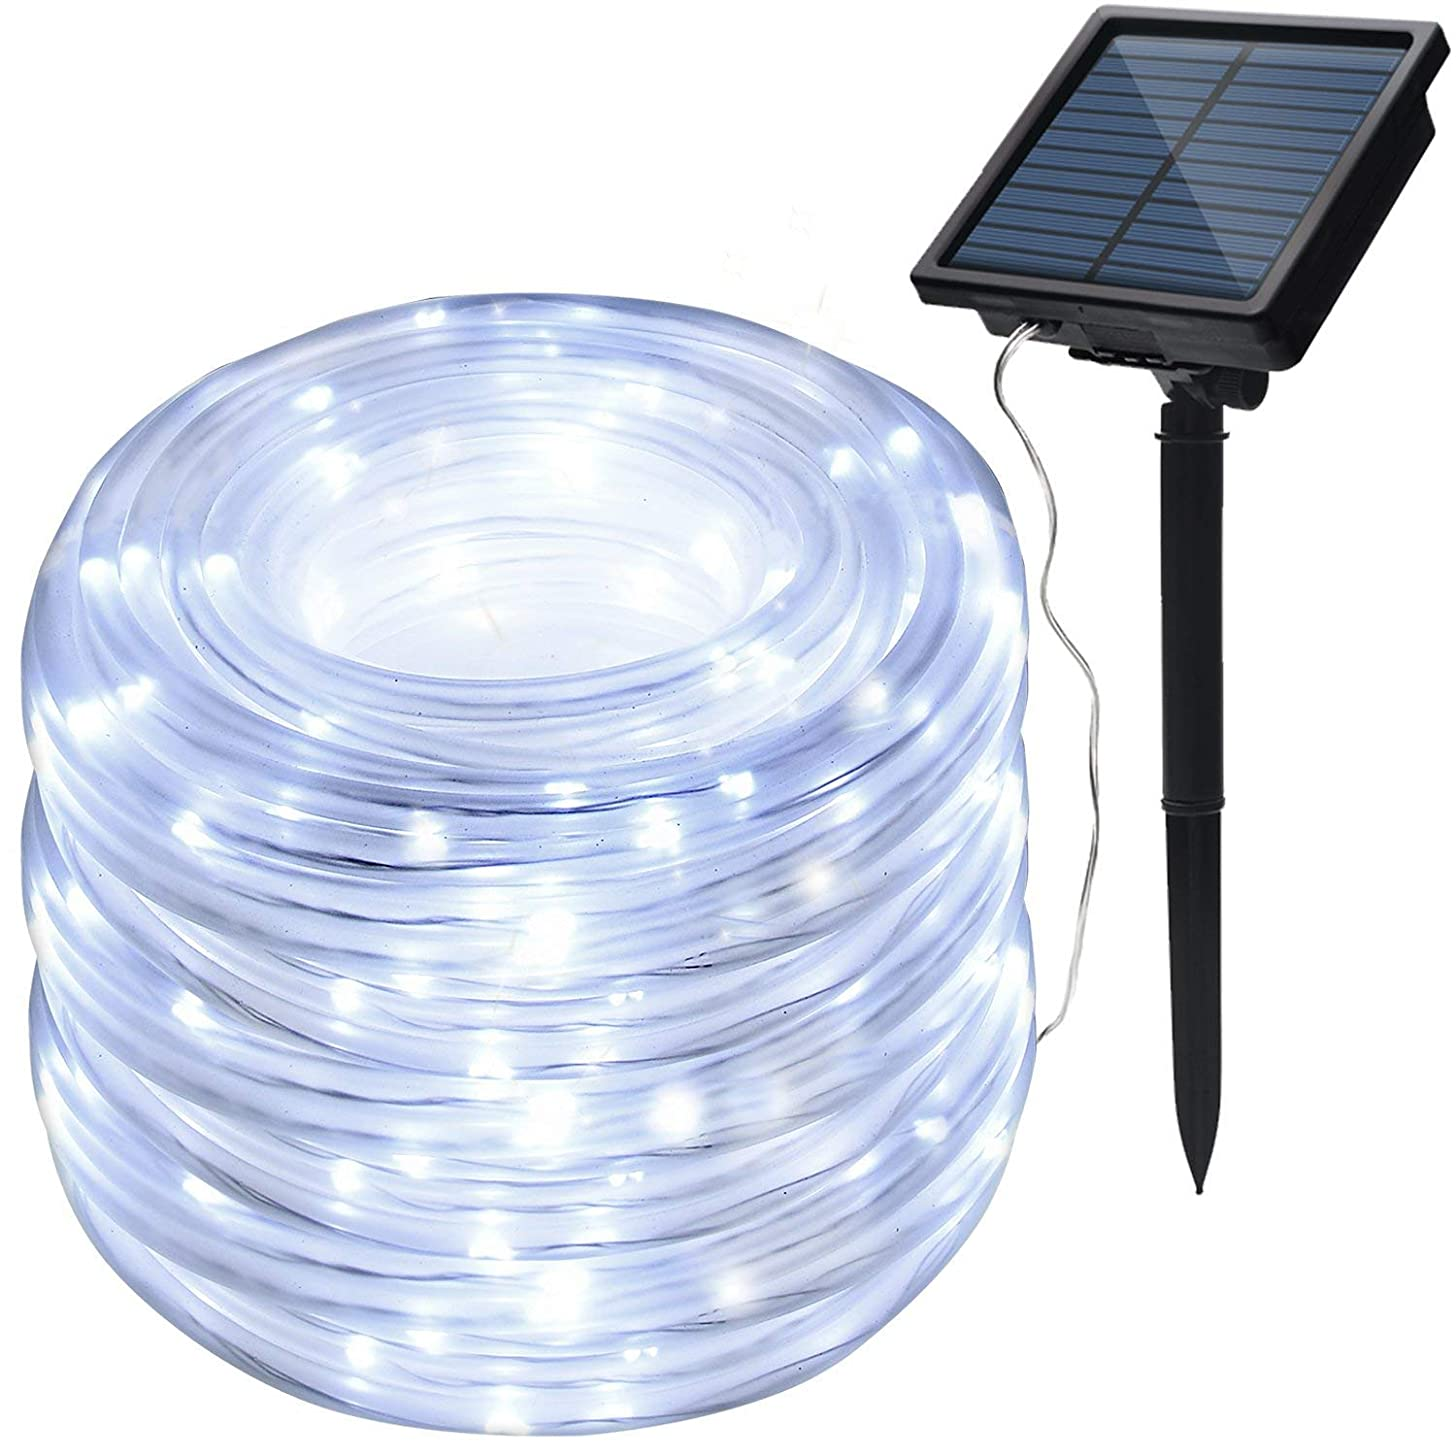 feierna Solar Rope Lights Outdoor, Fairy Rope String Lights Waterproof 33ft/10m 100LED Rope Tube Strip Lights for Christmas Wedding Halloween Patio Party Decoration (White)